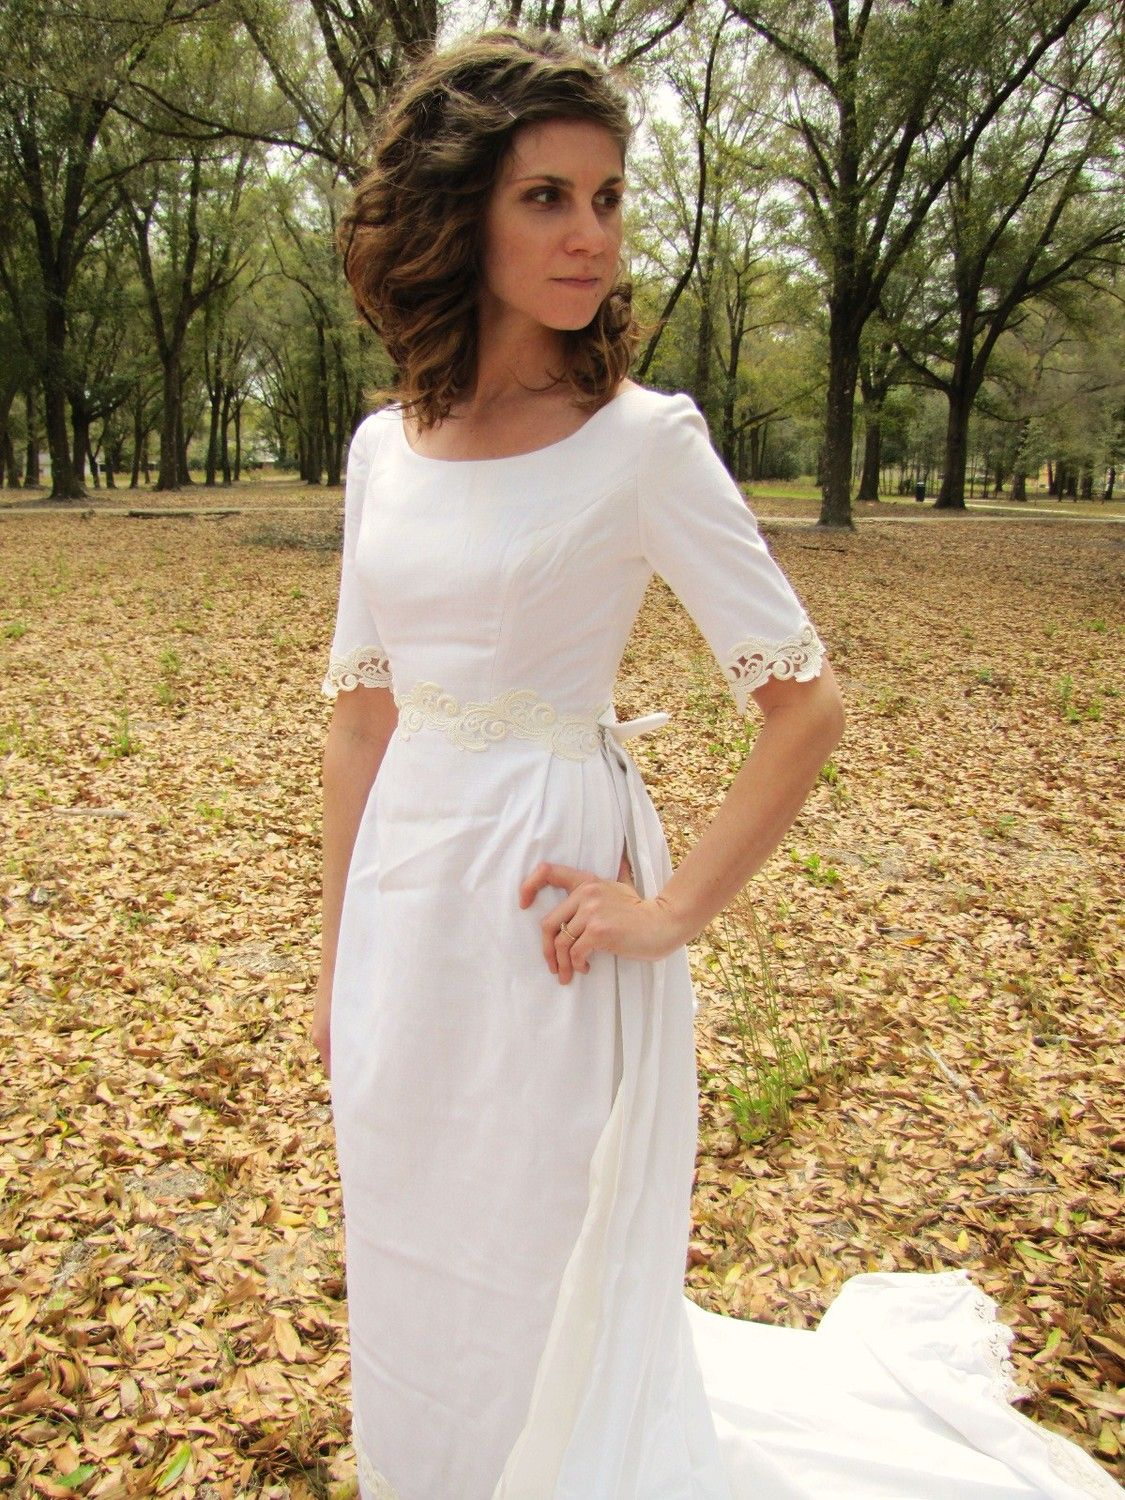 Your Place To Buy And Sell All Things Handmade Linen Wedding Dress Lace Dress With Sleeves White Linen Wedding Dress